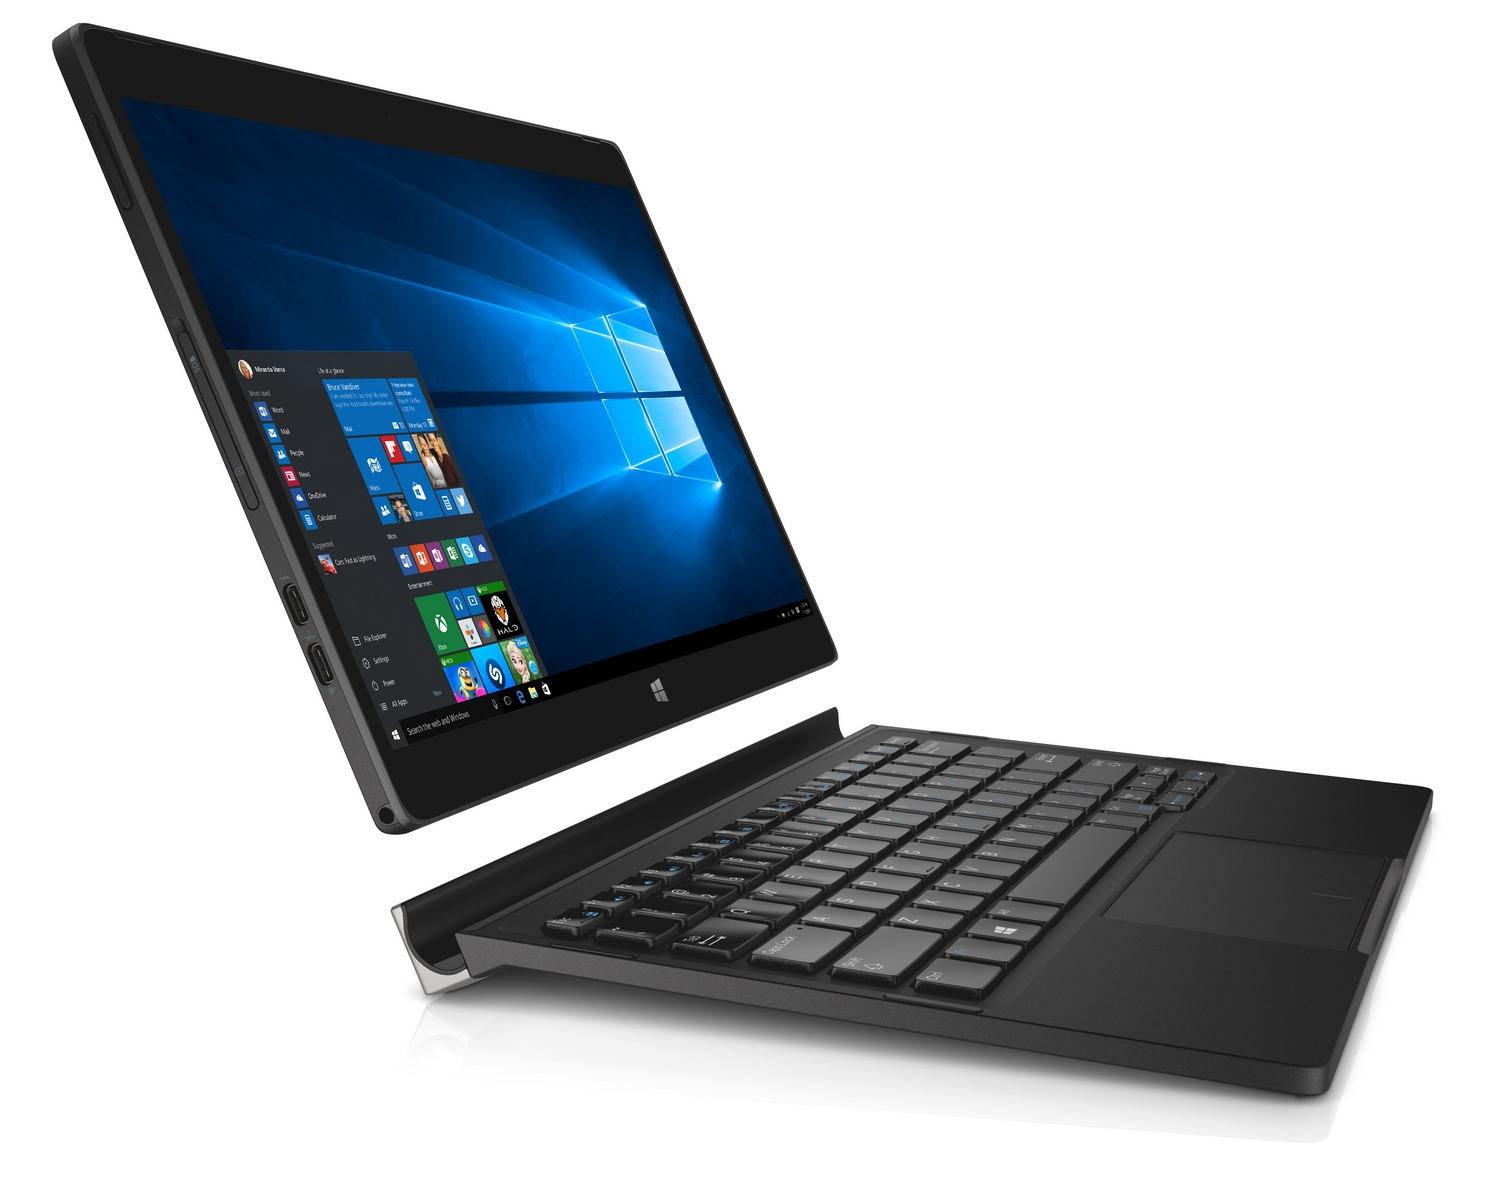 Enable Hey Cortana Windows 10 besides All In One Printers Under 100 as well Lenovo G505 102686 0 as well Dell Inspiron 8th Gen Price Release likewise Dell Latitude E7470 Disassembly. on dell xps 400